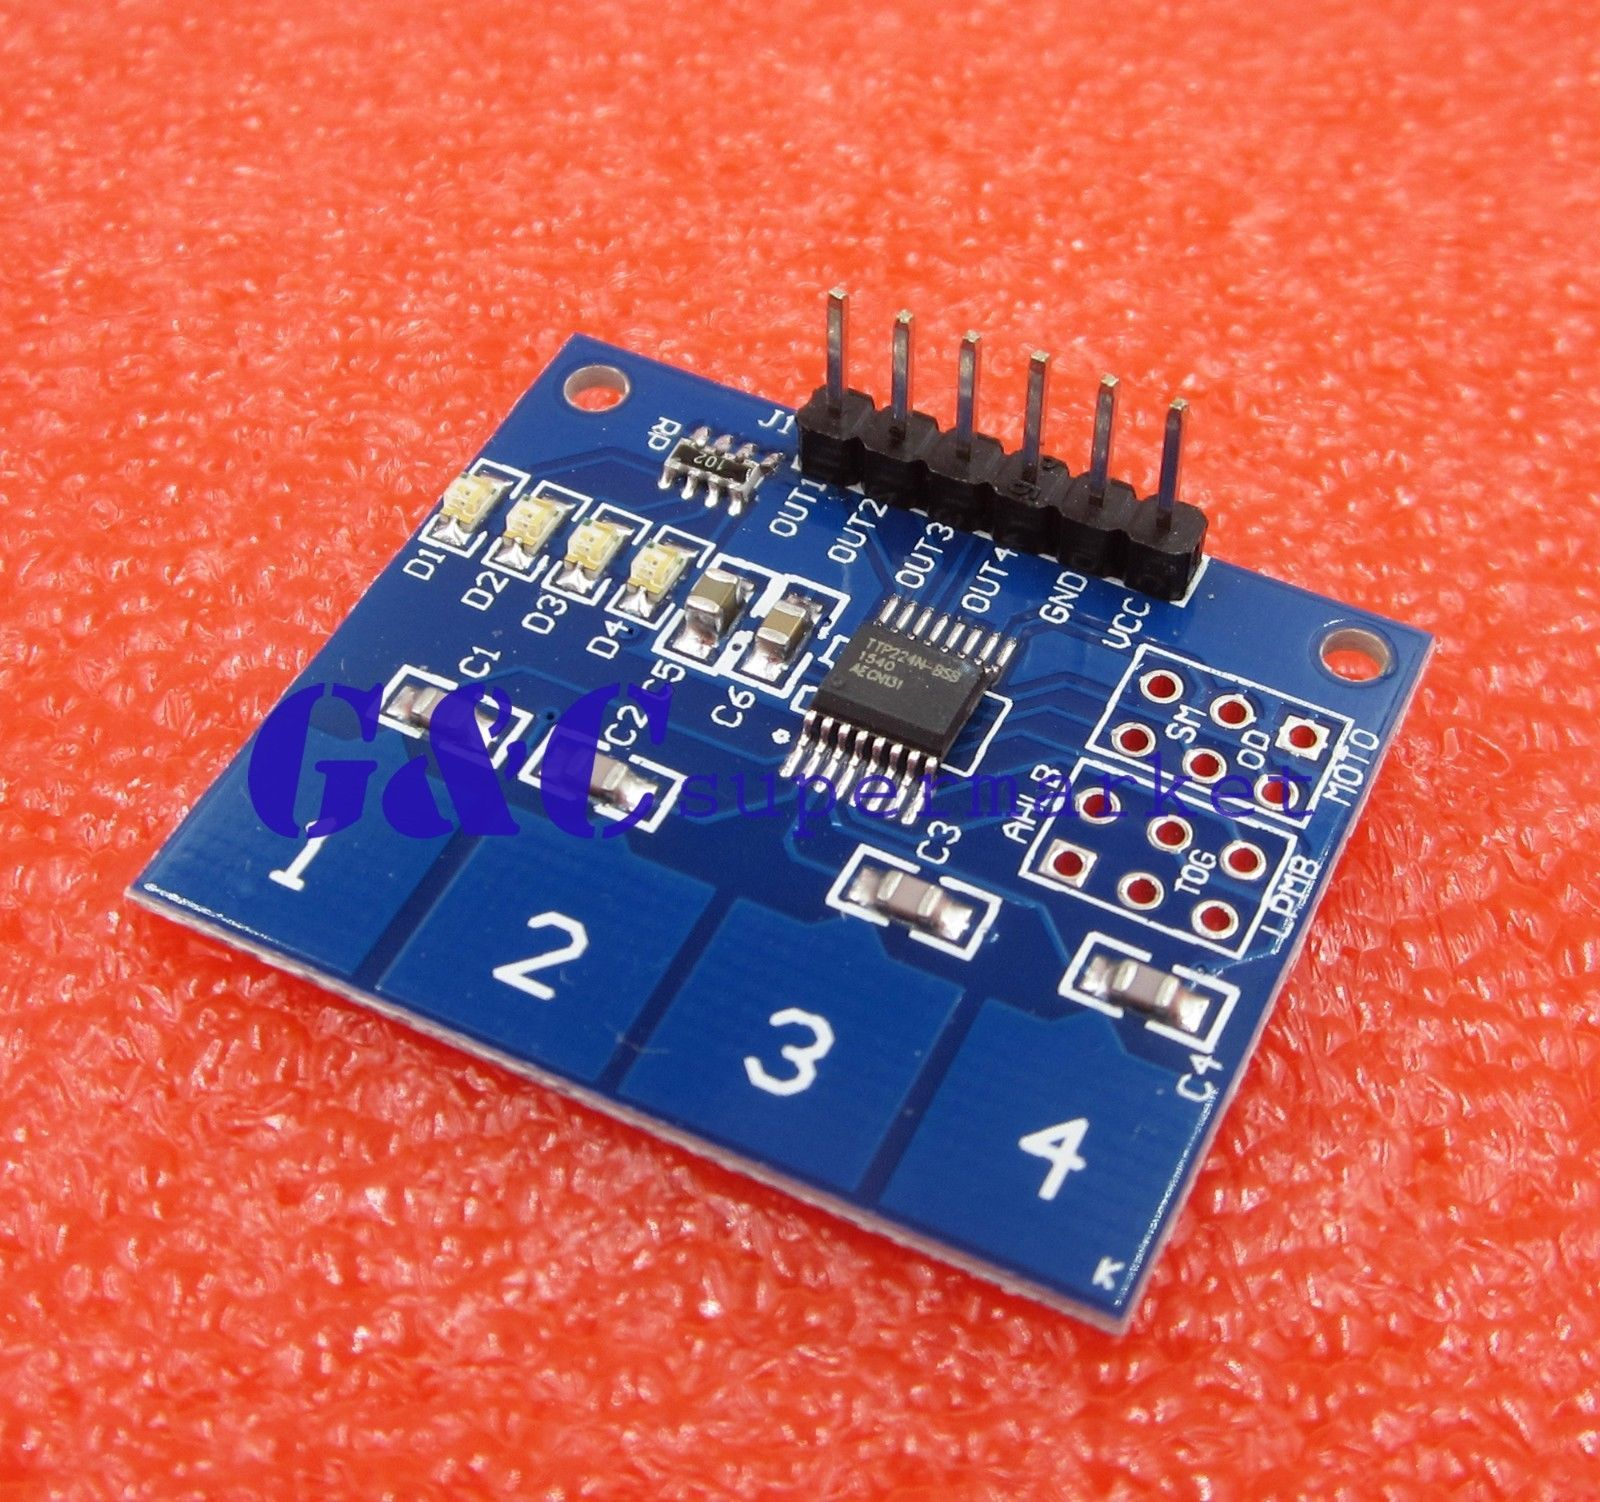 218 2pcs Ttp224 4 Channel Digital Touch Sensor Module Capacitive Switch Modulein Integrated Circuits M61 Ebay Electronics